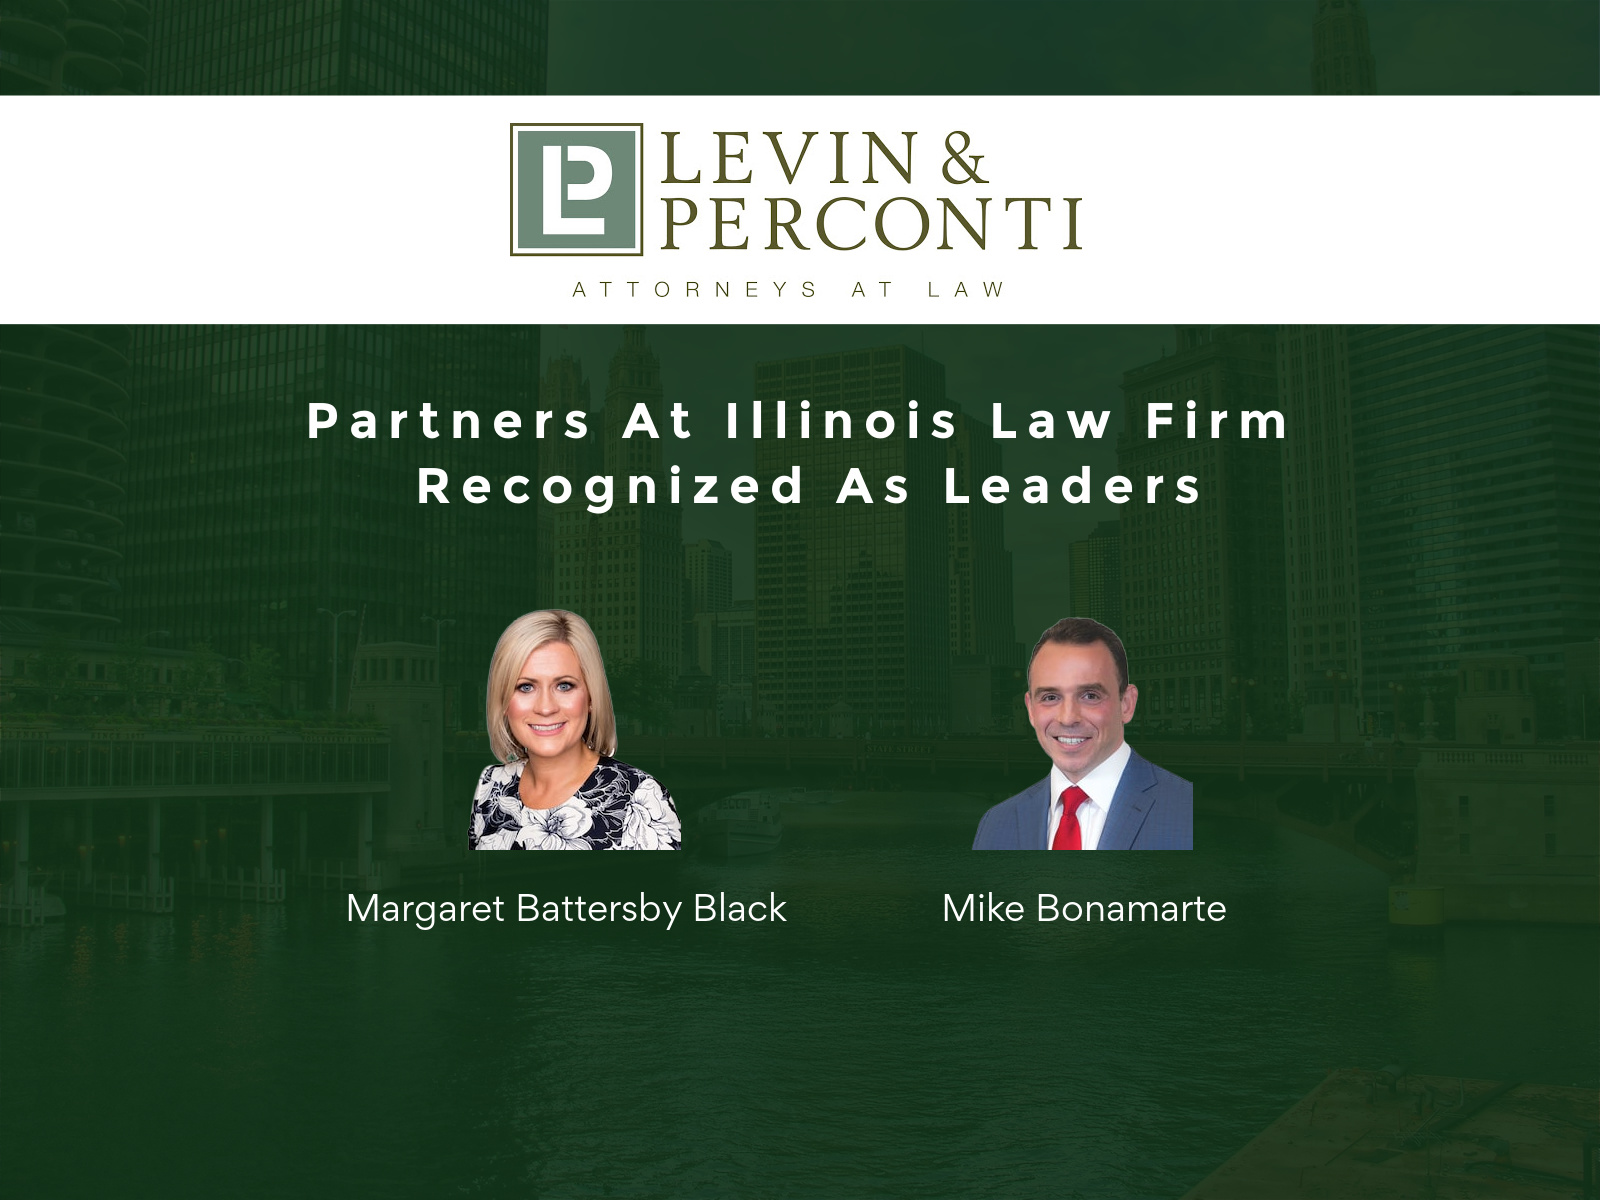 Partners At Illinois Law Firm Recognized As Leaders